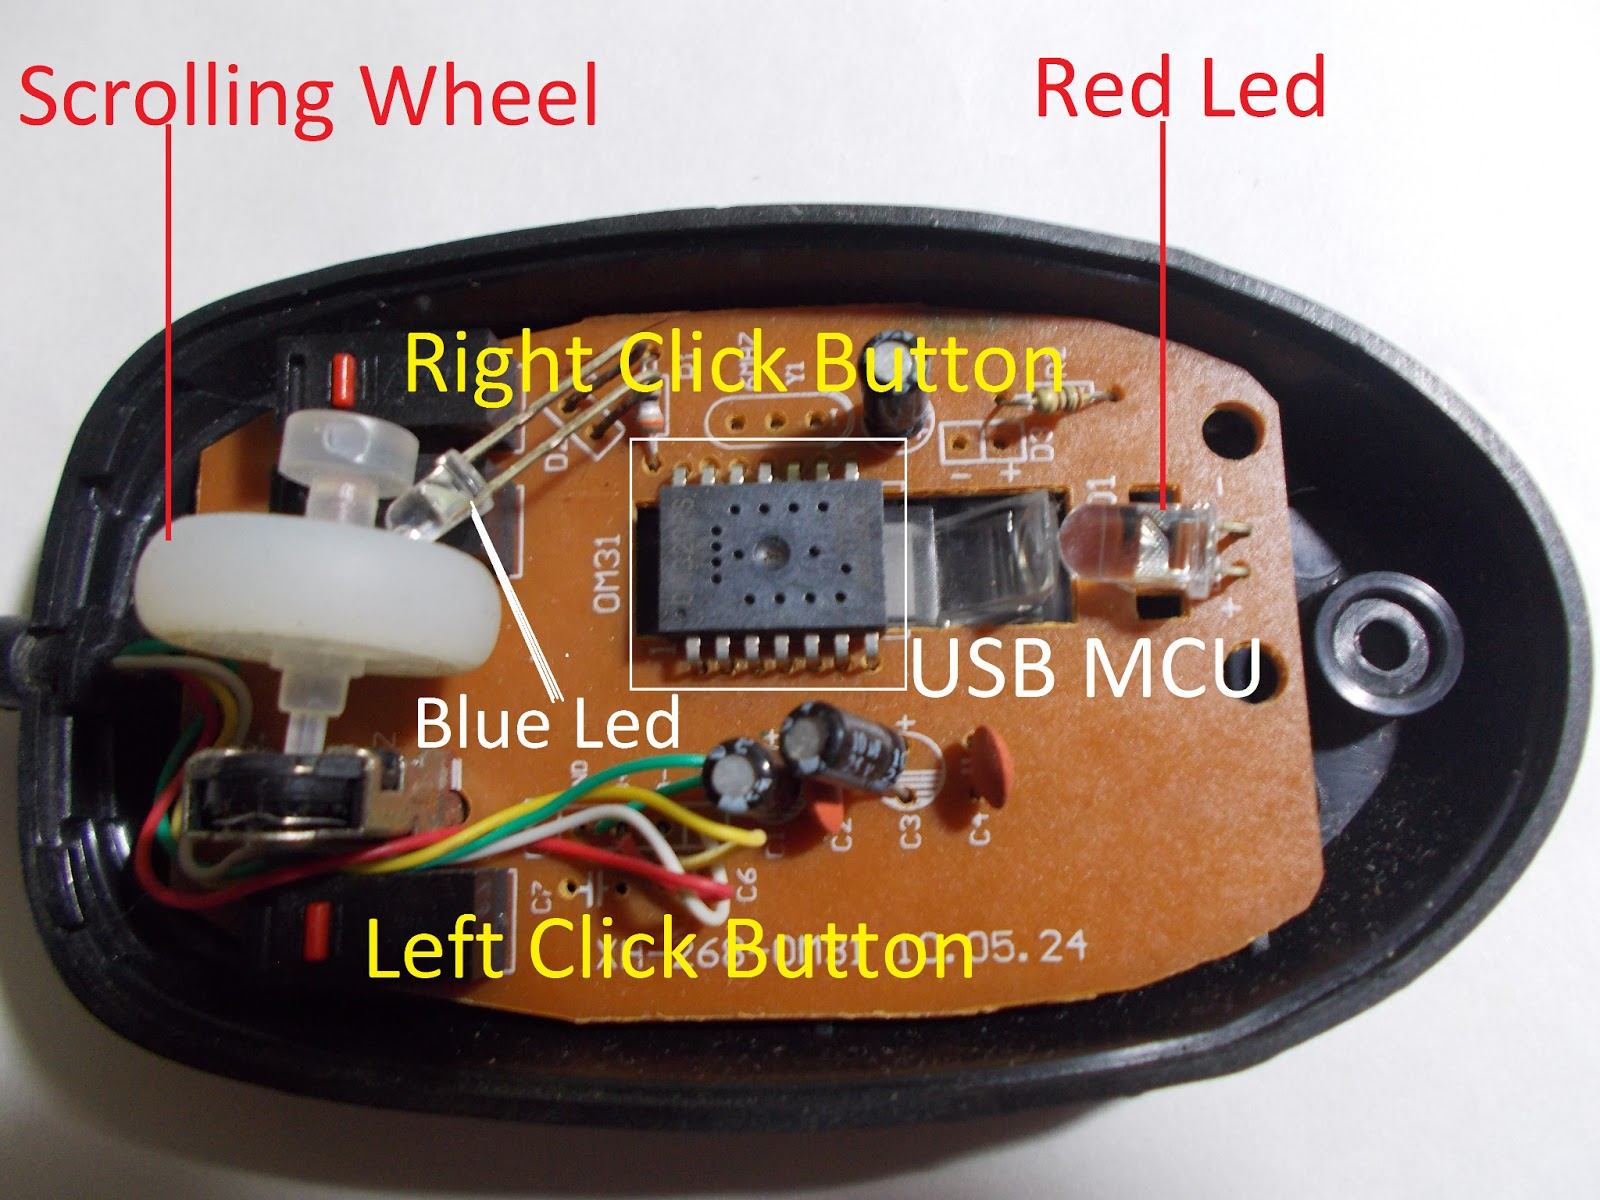 inside an optical mouse electronic repair tips the usb mcu chip found in this is om31 mcu sensor 2 in 1 optical mouse ic the om31 ic is integrated a usb micro controller unit mcu for computer